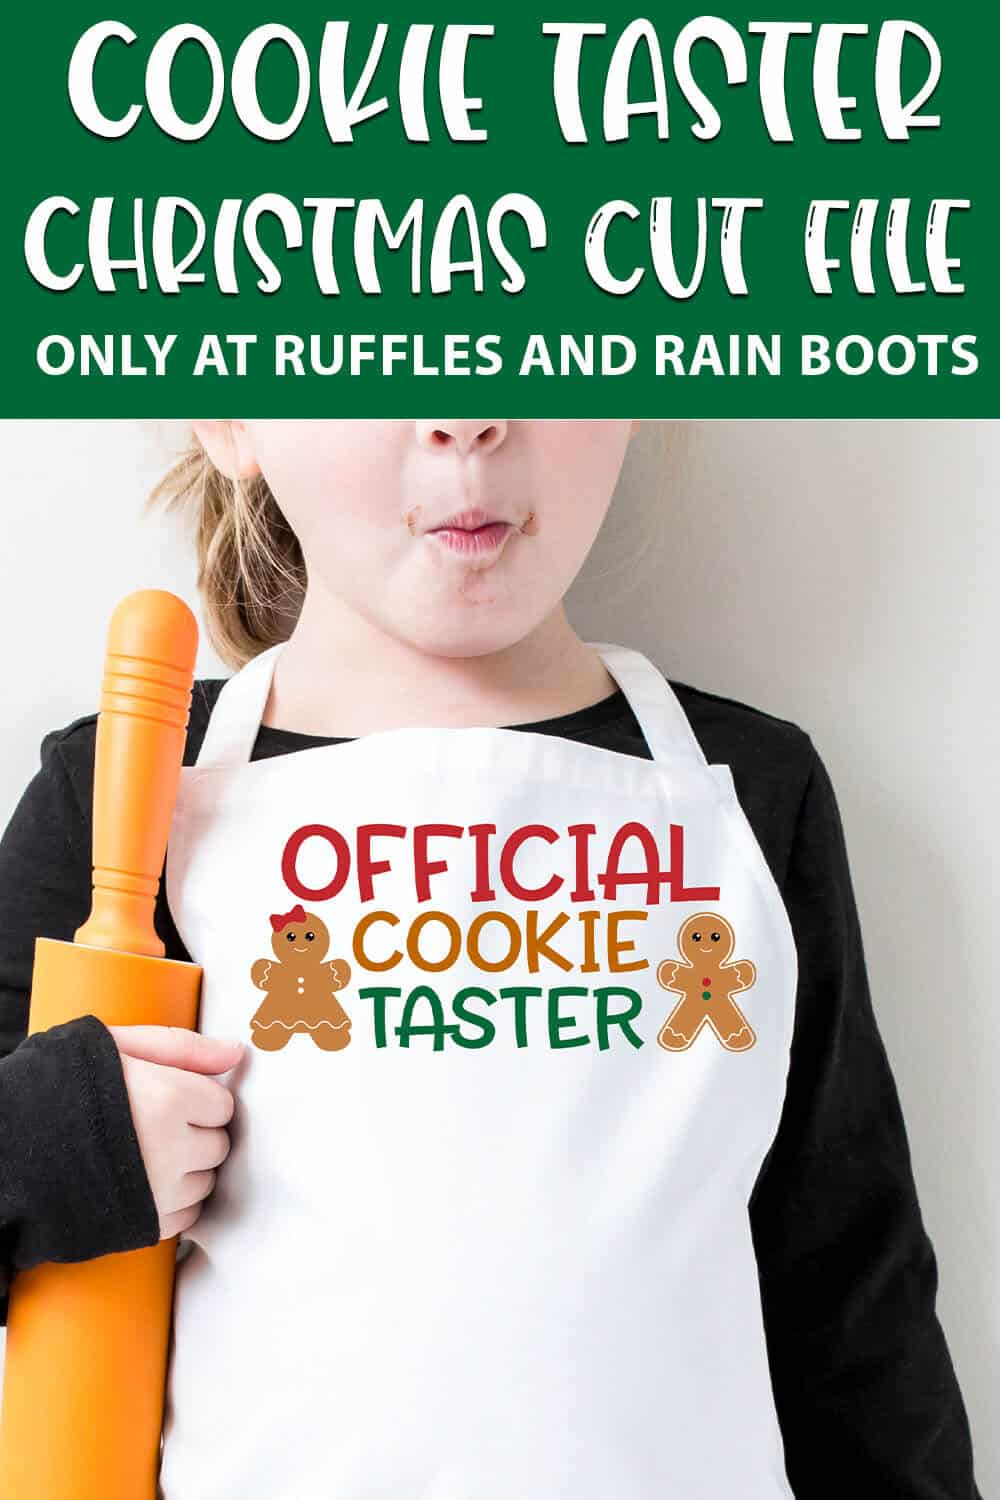 official cookie taster images For cutting machines with text which reads cookie taster christmas cut file